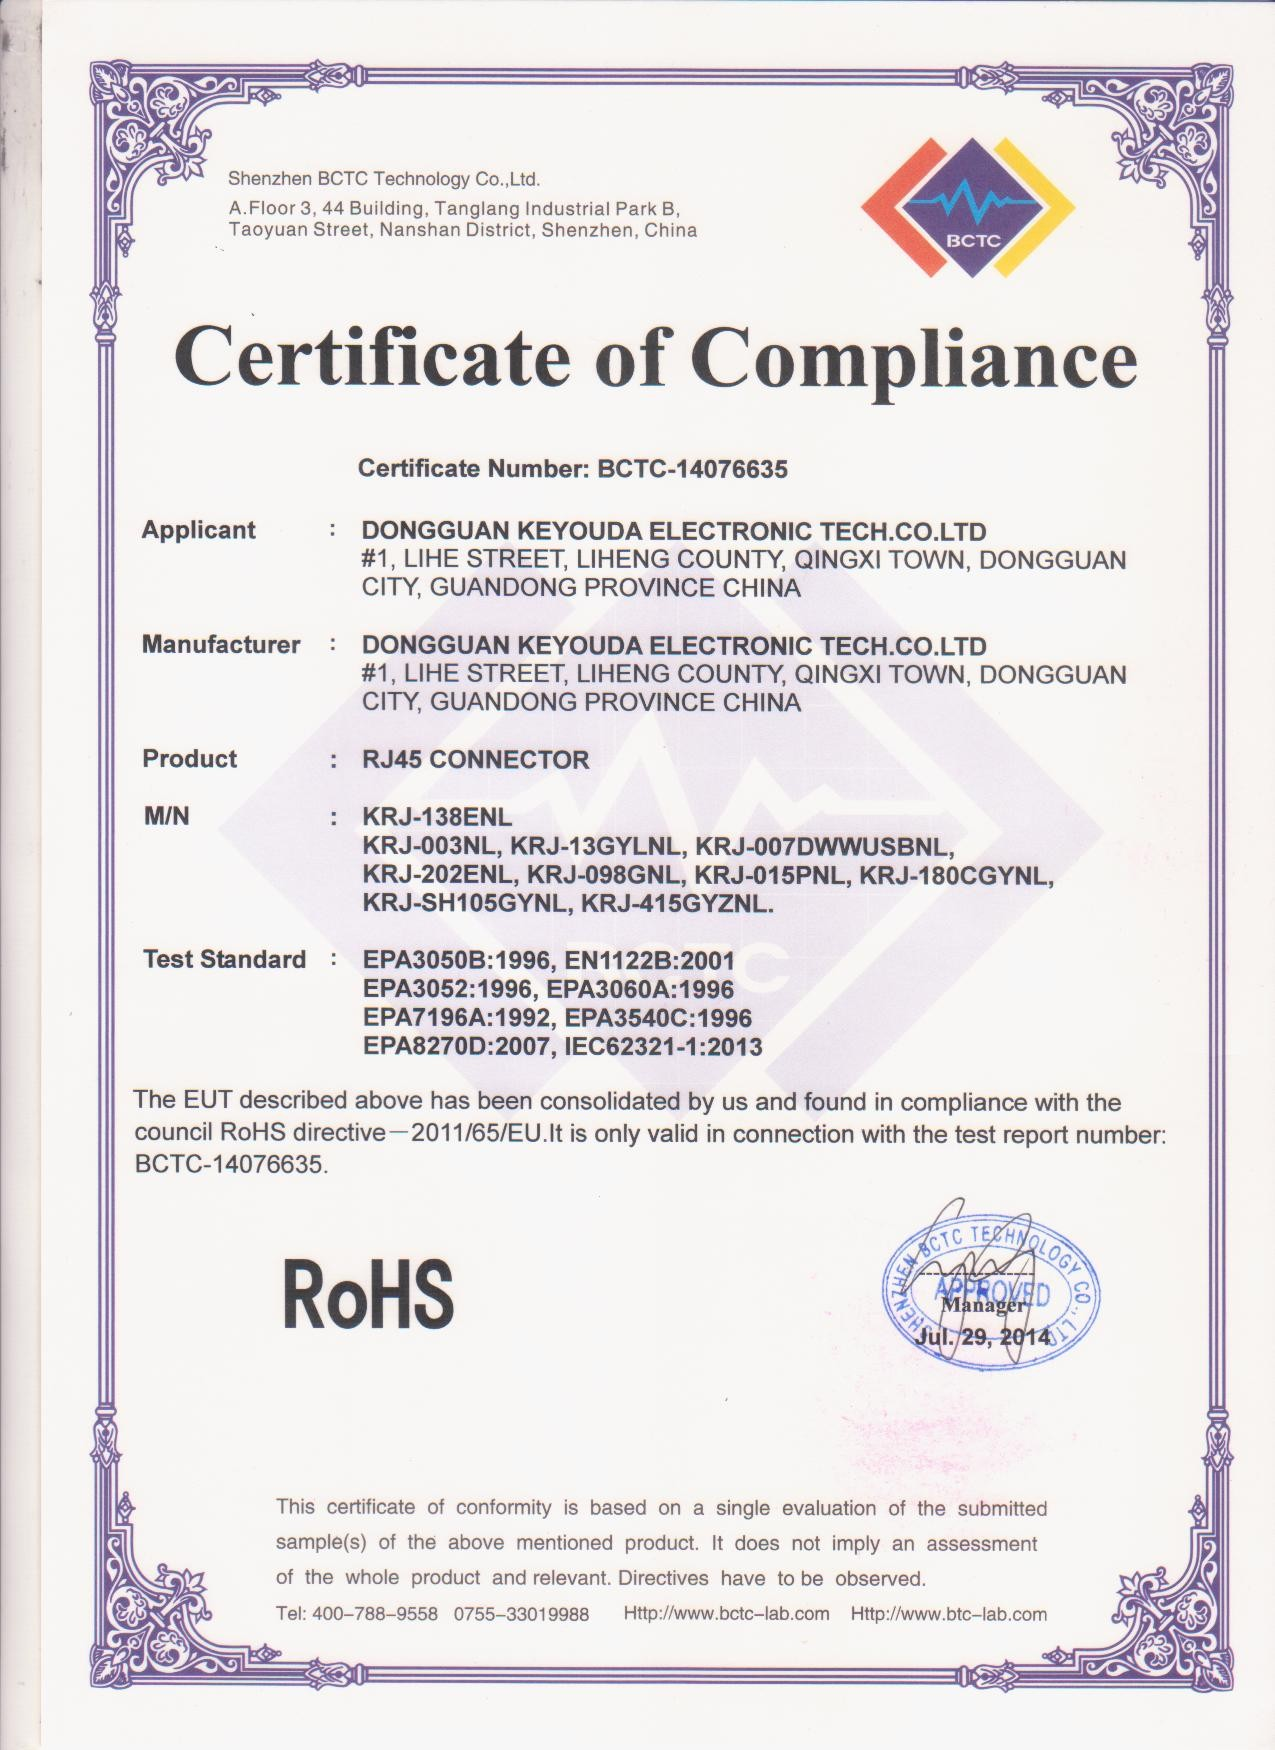 china latest news about Our products are conformed RoHS requirement.